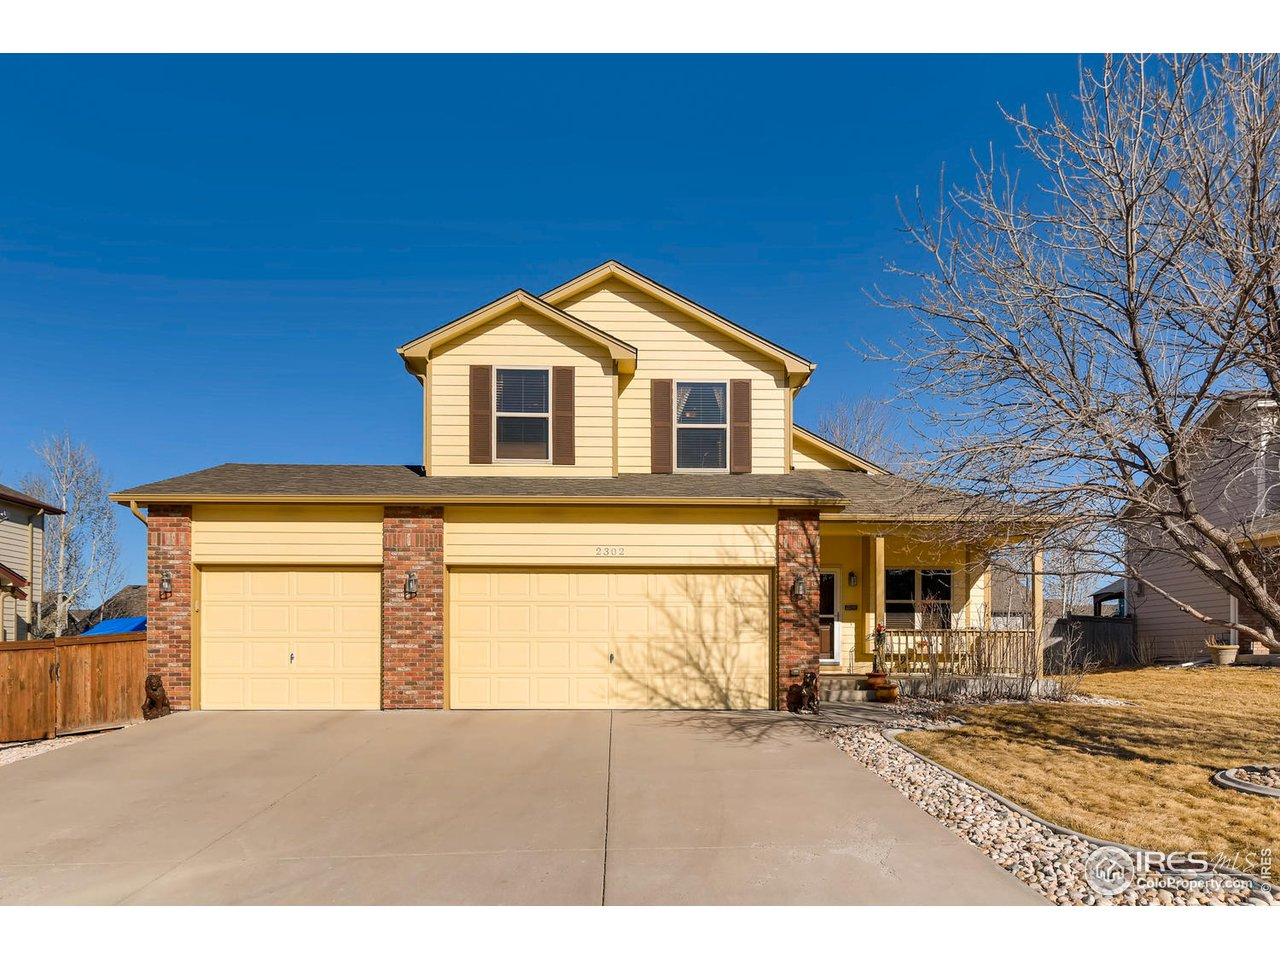 2302 72ND AVE CT, GREELEY, CO 80634